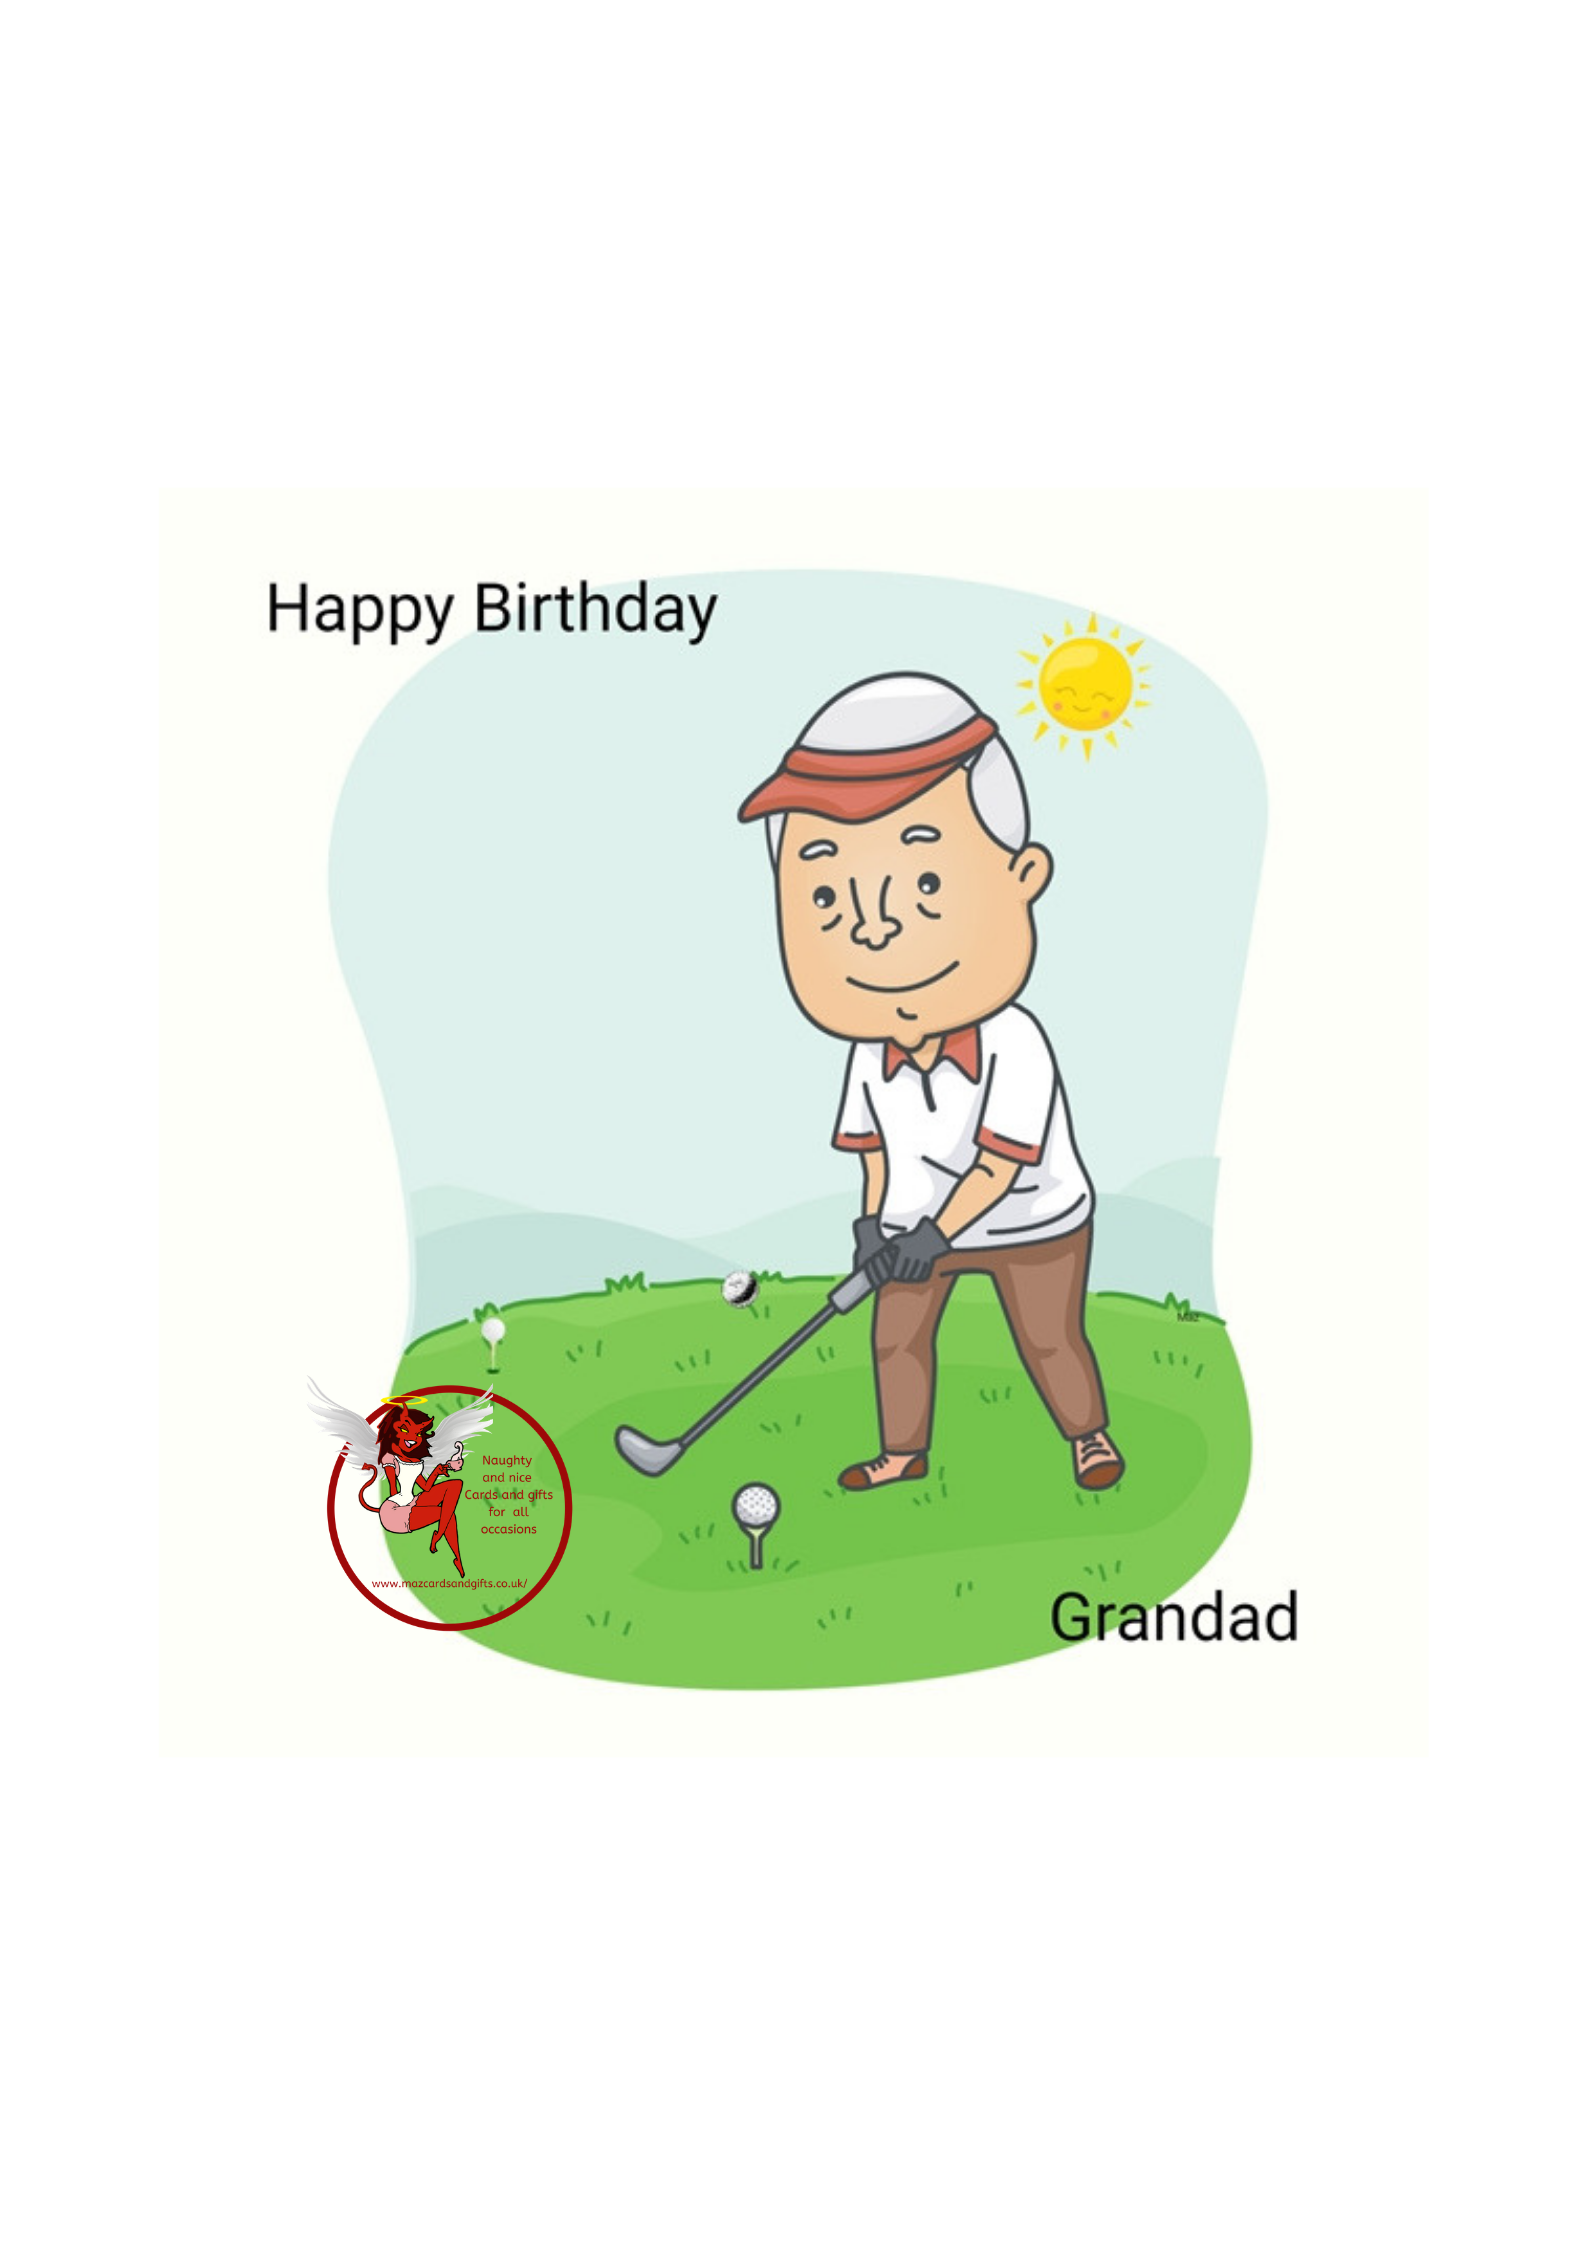 Birthday - Grandad - Order No 066